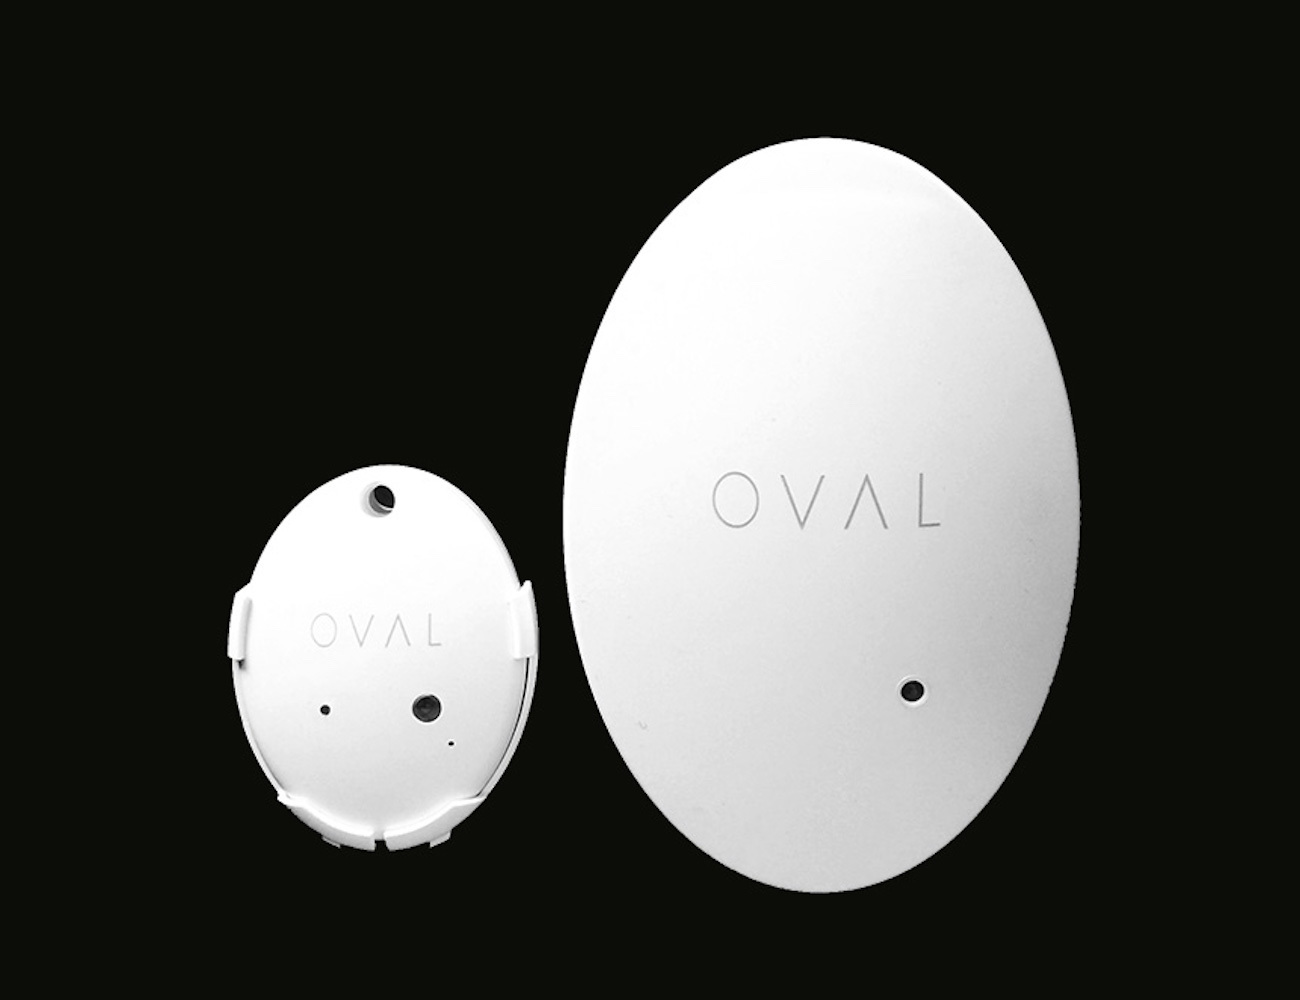 Oval Smart Multi-Purpose Sensor